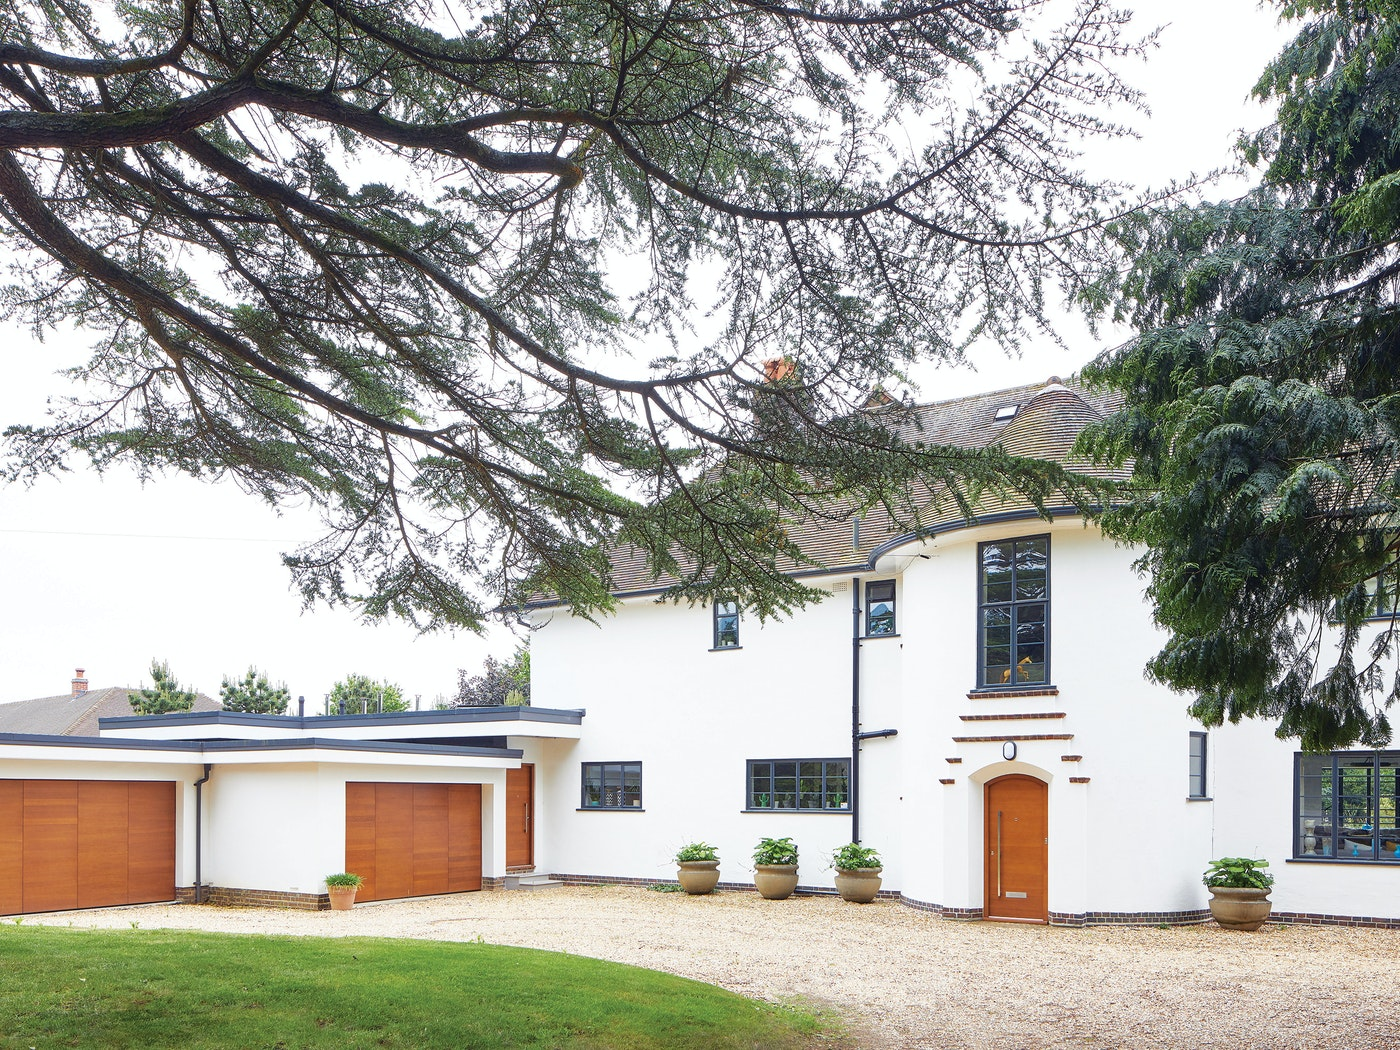 This house errs on the traditional side but is given a contemporary update with its white render and matching iroko front & garage doors in a simple design